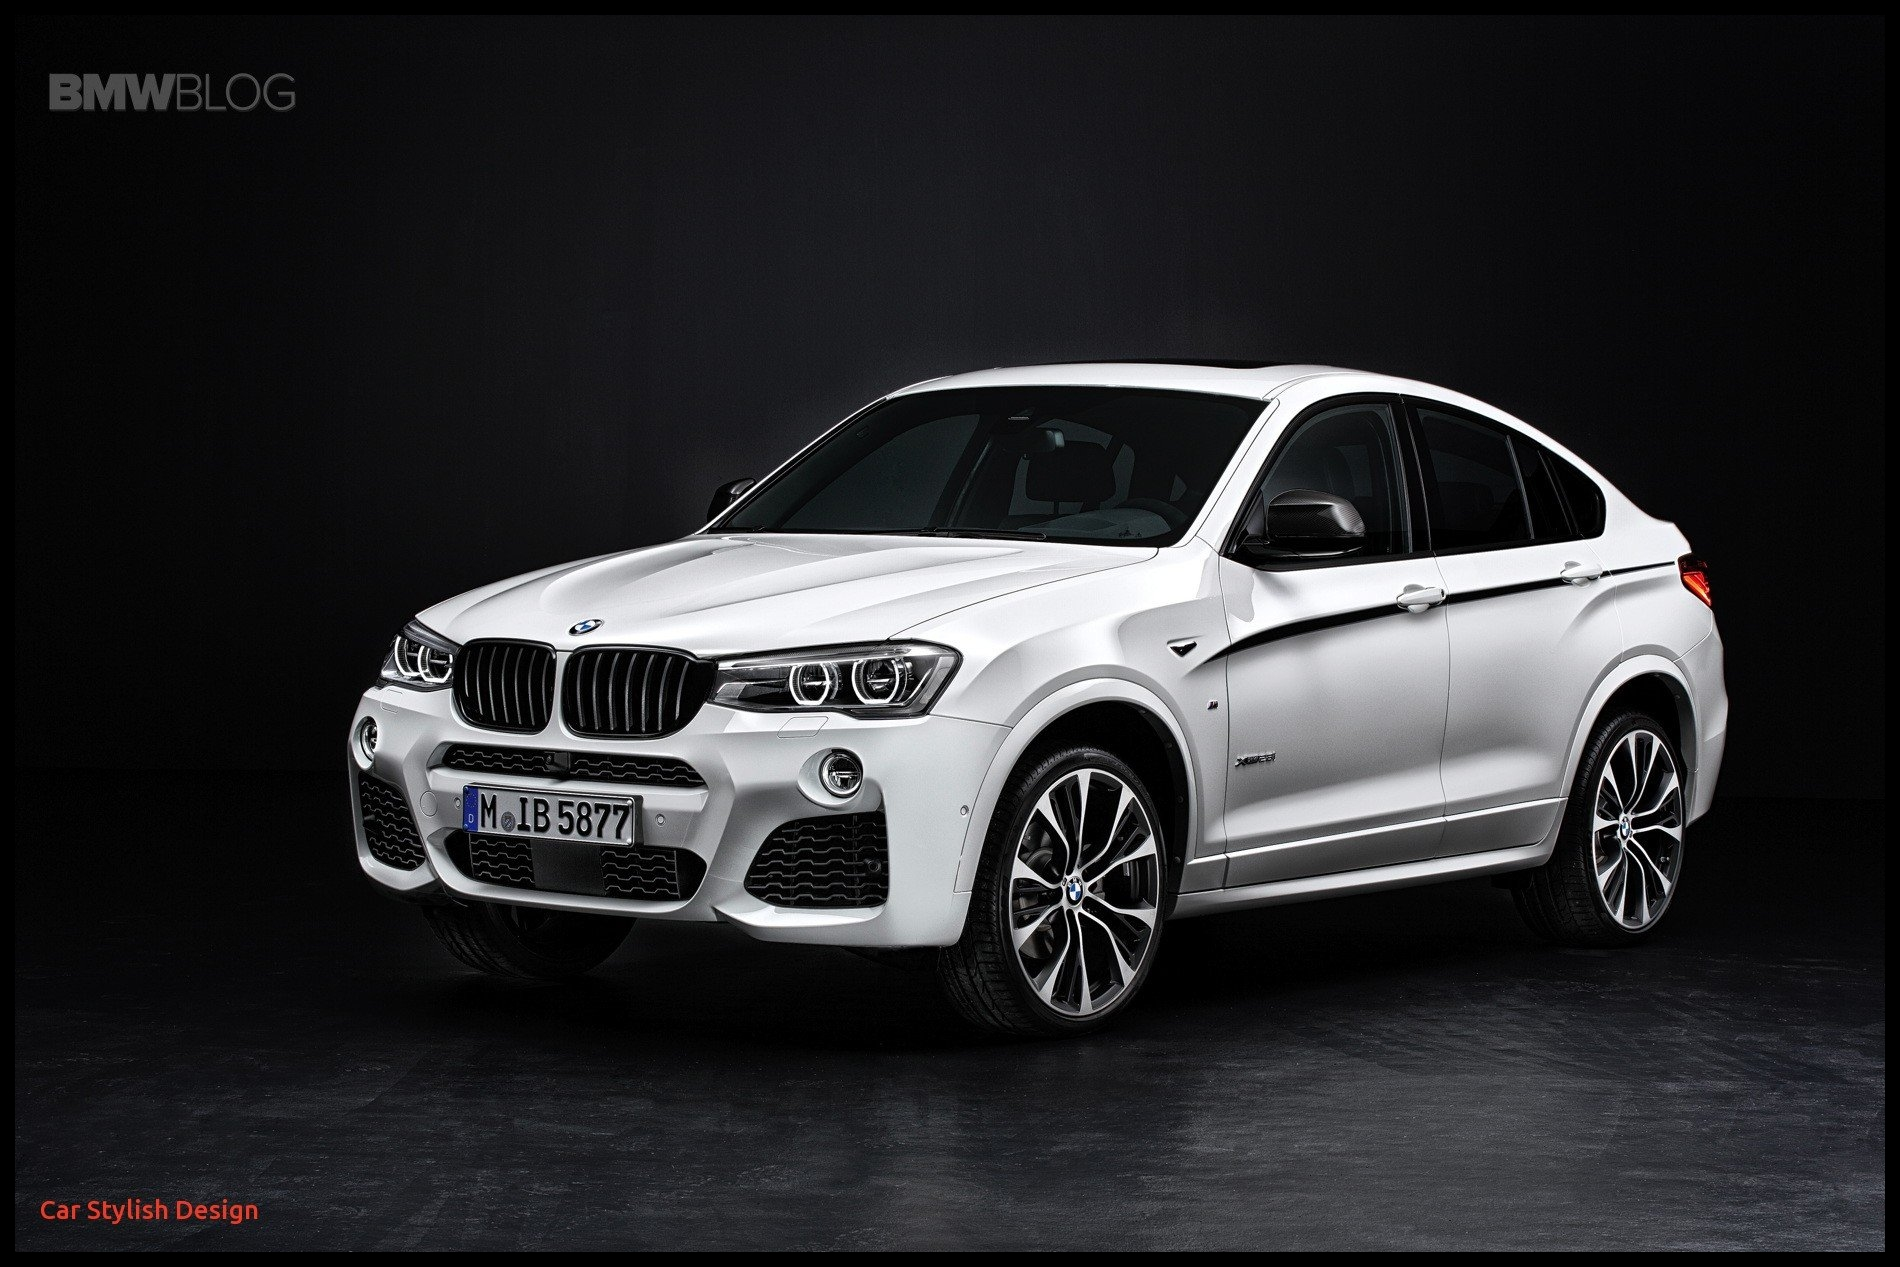 Bmw Accessories Awesome Bmw X3 and Bmw X4 M Performance Power Kit and M Performance Parts